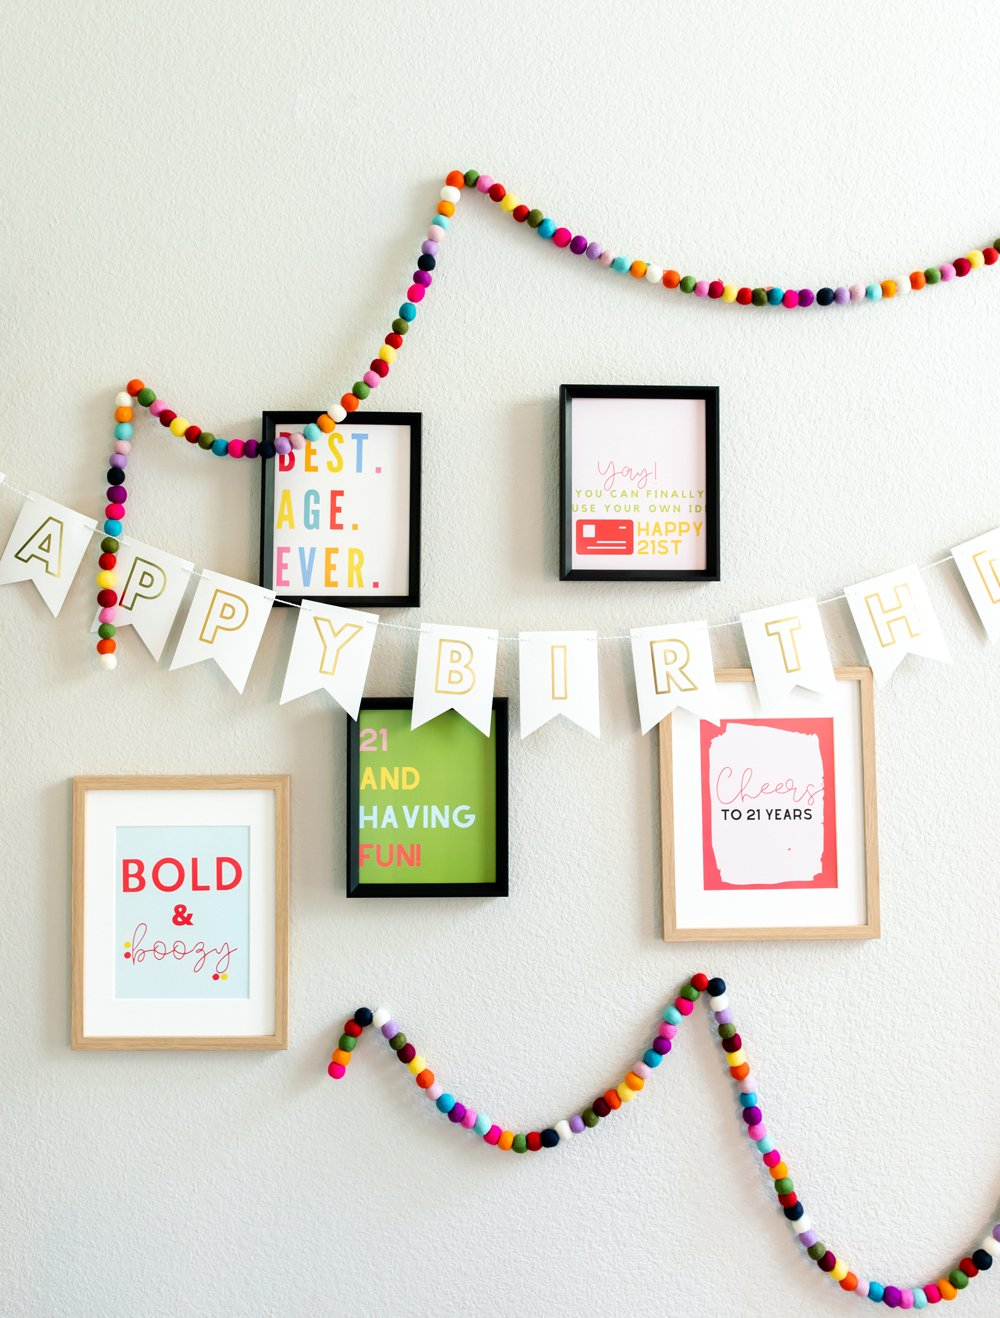 21st birthday quotes signs decor for 21st birthday party